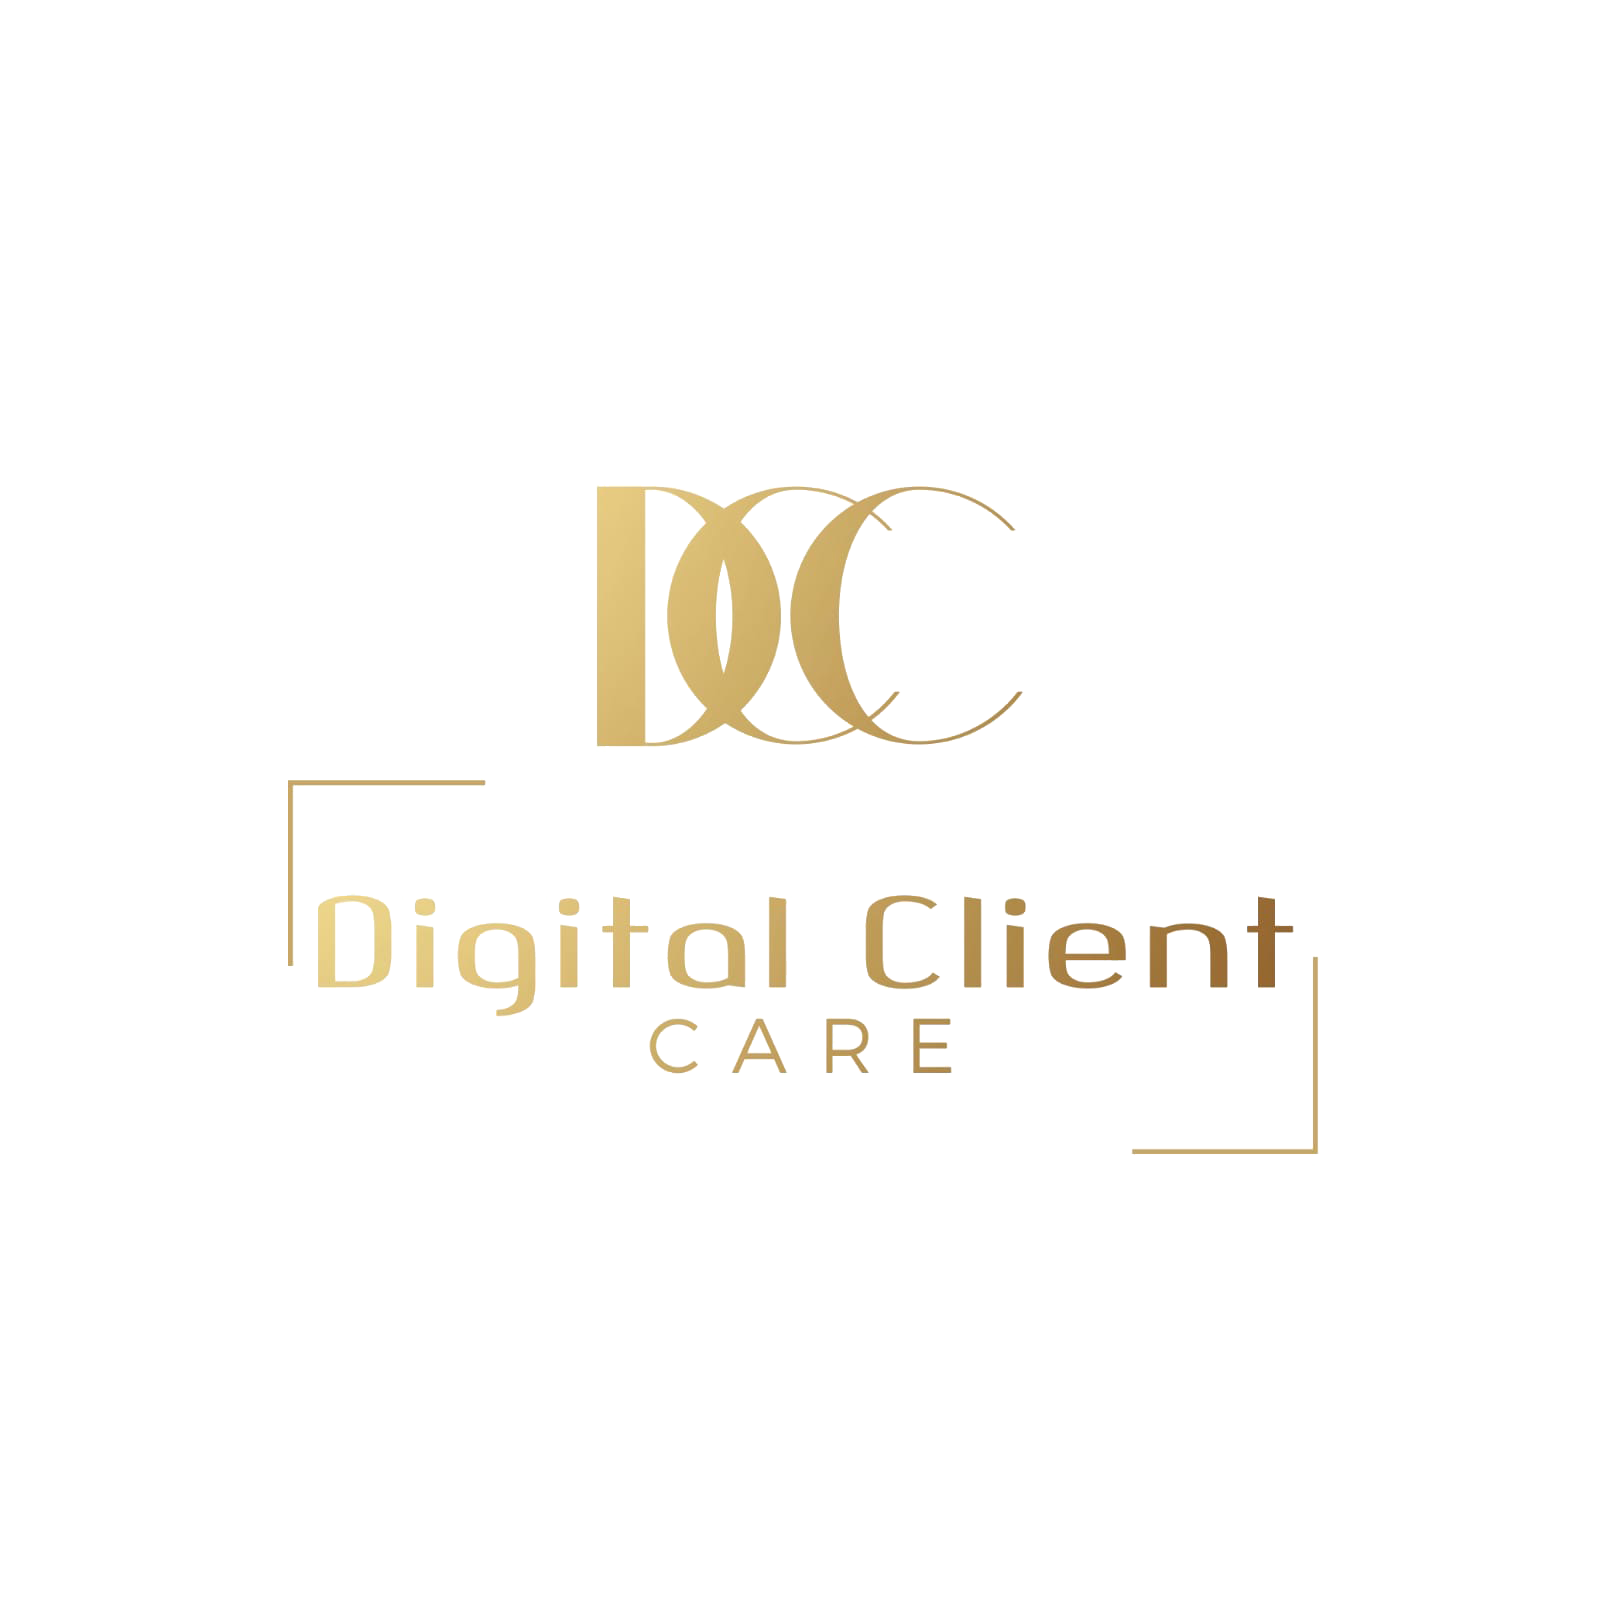 Digital Client Care